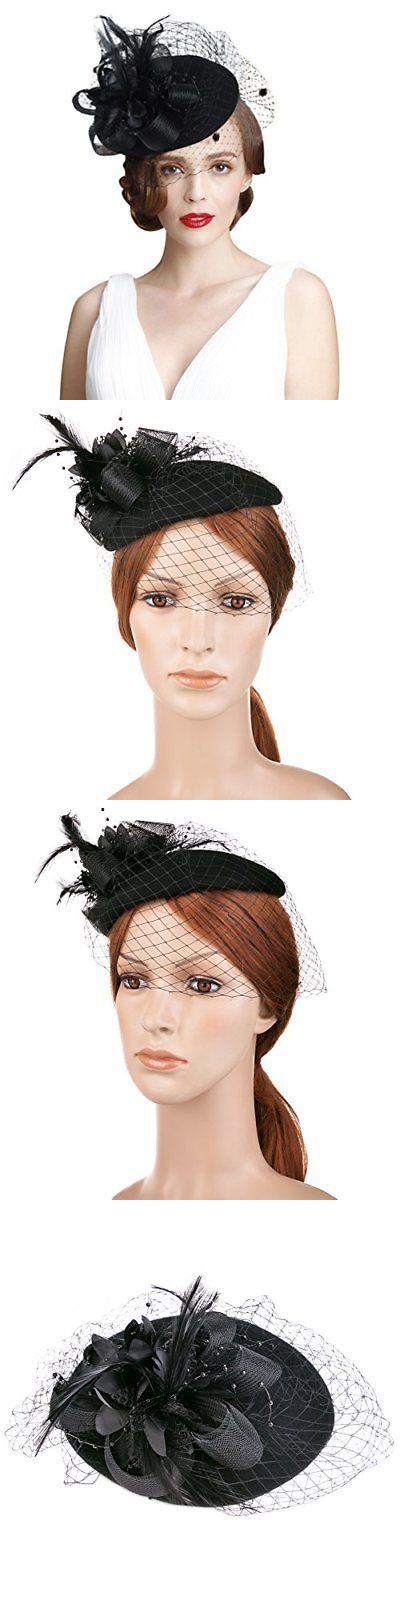 6057364d253 Fascinators and Headpieces 168998  Vbiger Women S Fascinator Woolen Felt  Pillbox Hat Cocktail Party Wedding Bow 3 -  BUY IT NOW ONLY   24.13 on   eBay ...